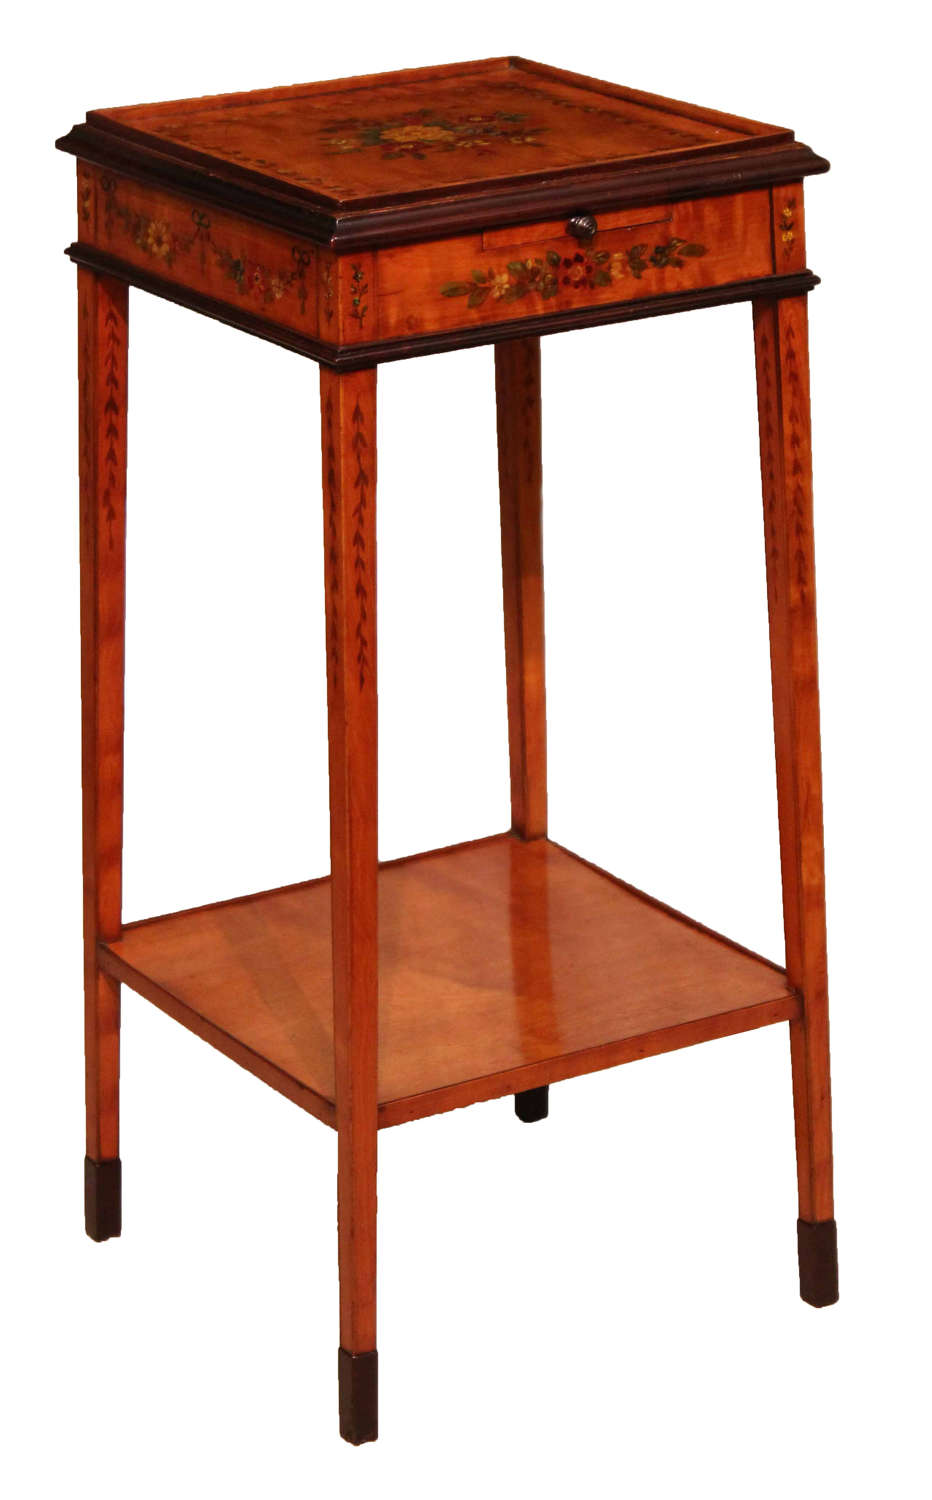 An Exhibition Quality Edwardian Mahogany Inlaid Kettle Stand